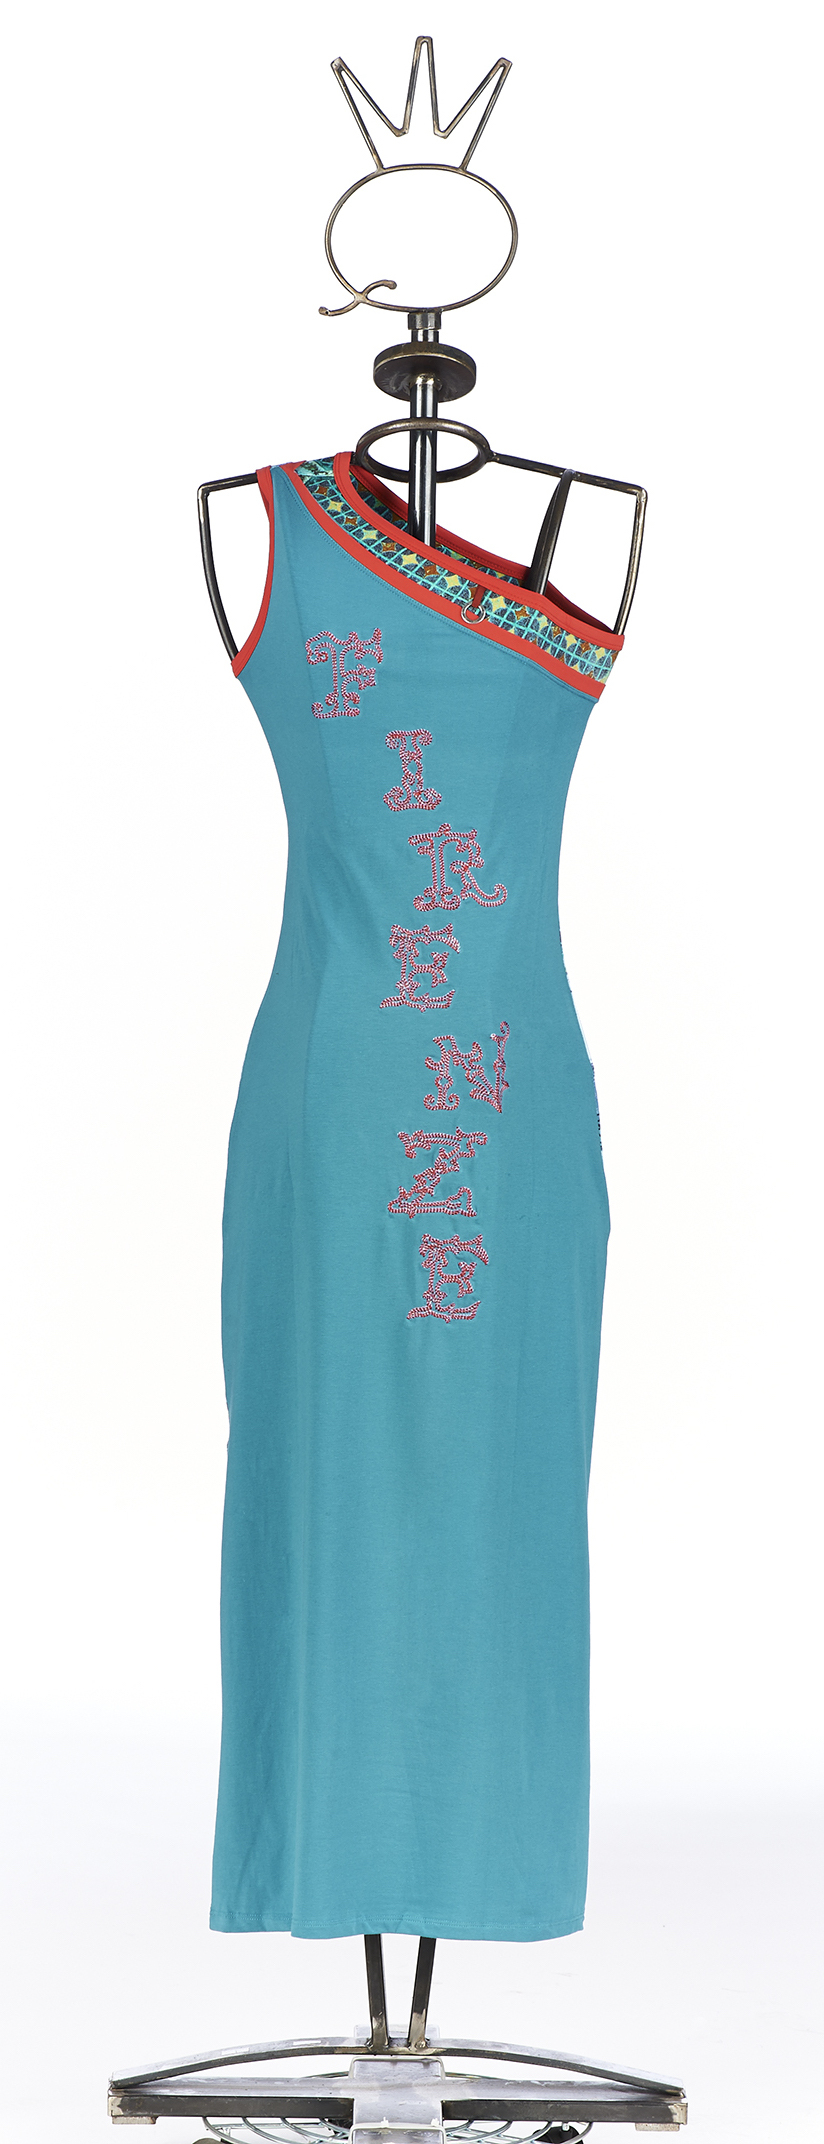 Save The Queen Italy: Desirable Duomo Firenze Dress (1 Left!)